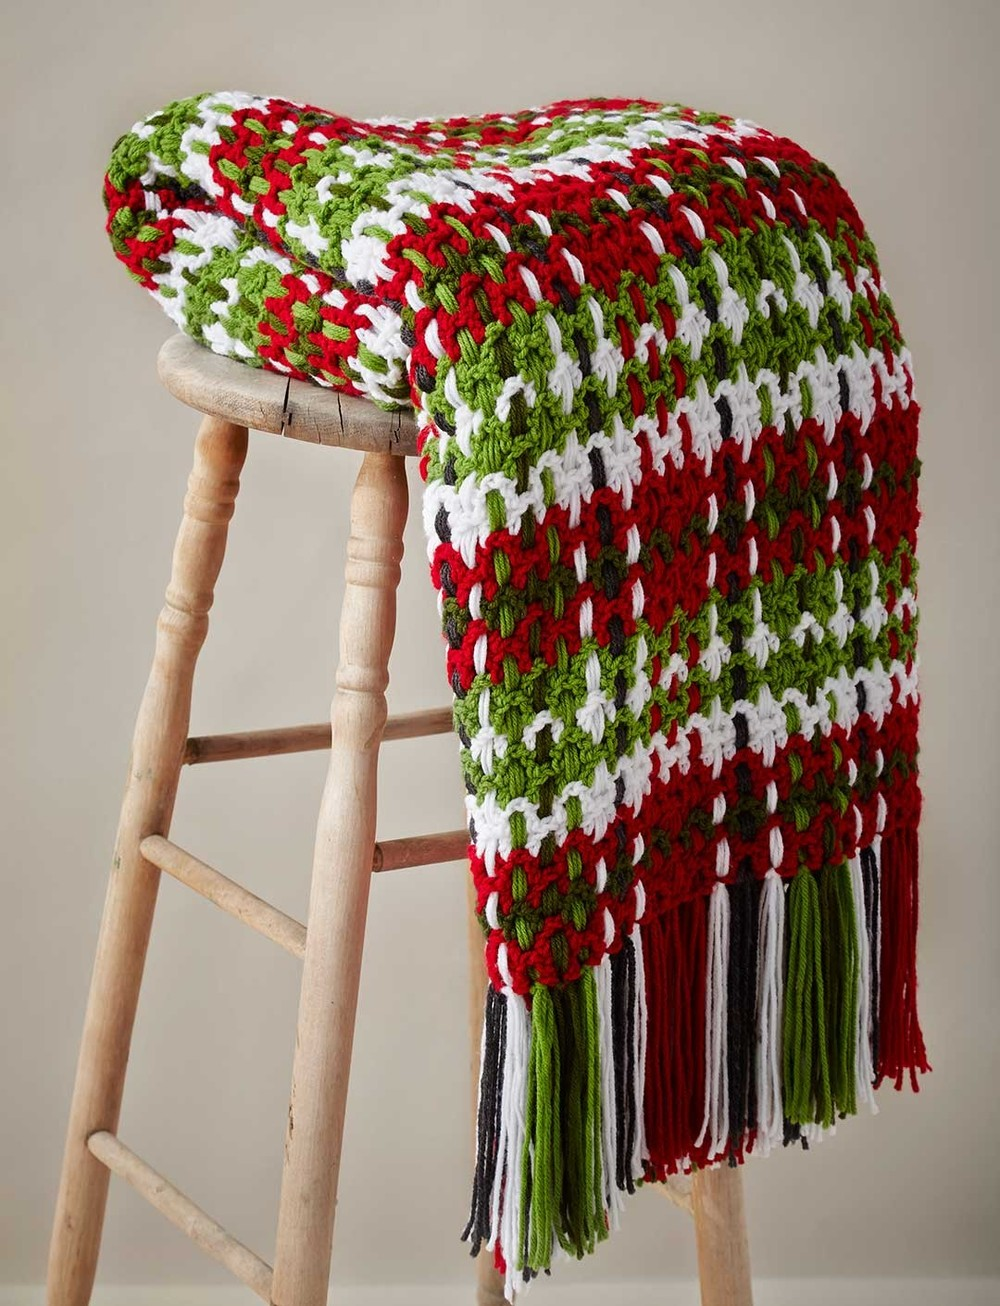 Crochet Pattern For Large Afghan : Contemporary Plaid Crochet Afghan Pattern ...